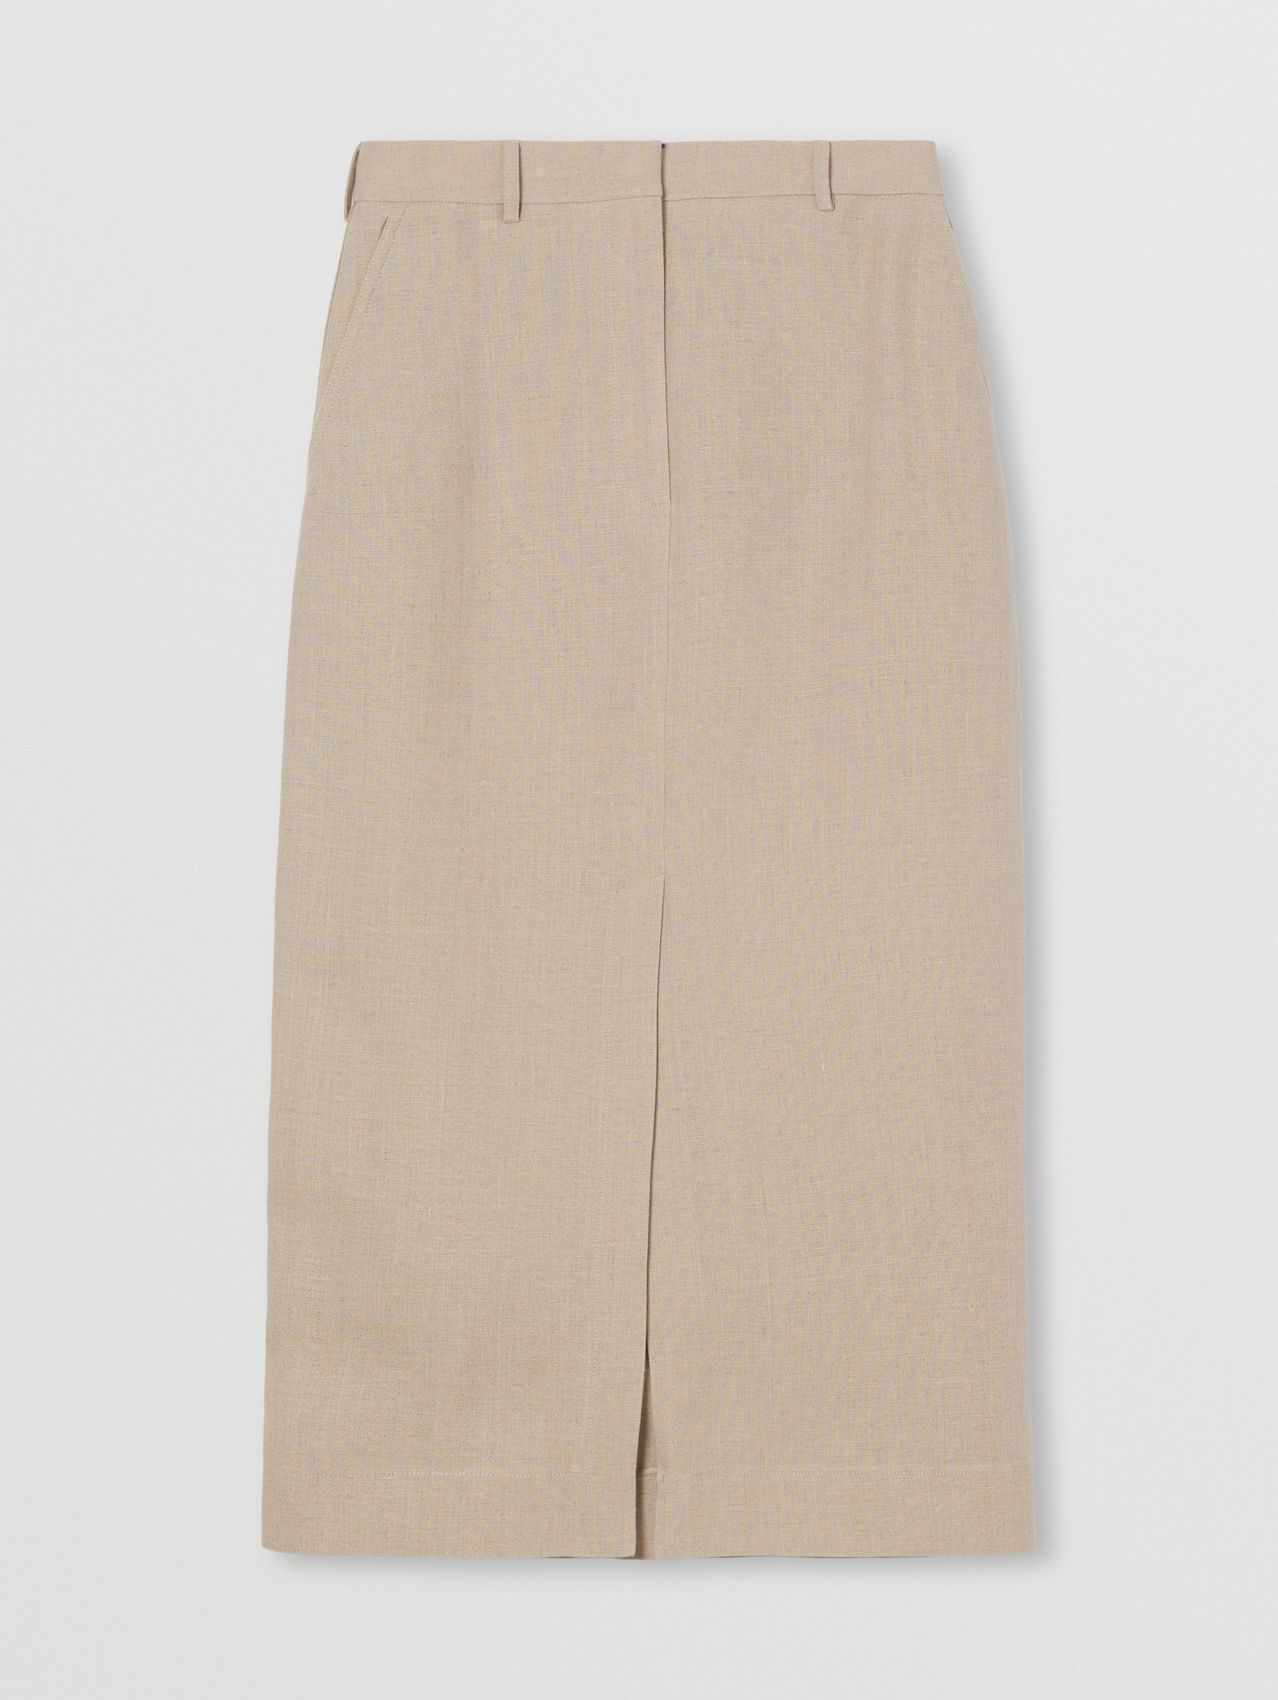 Linen Tailored Pencil Skirt in Oatmeal